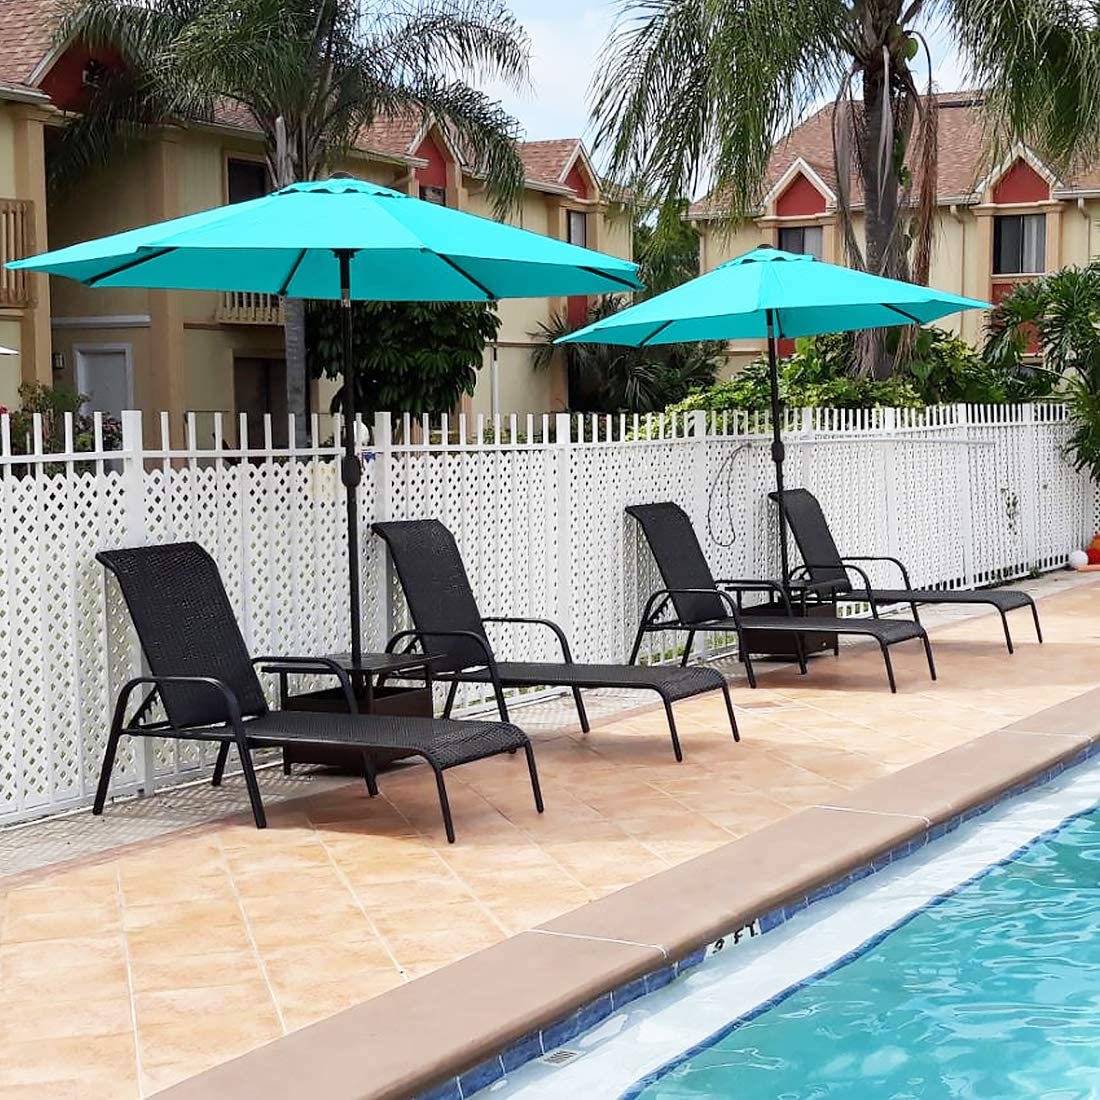 quictent 9ft turquoise patio umbrella 3 years non fading outdoor garden table canopy market umbrella pool backyard with ventilation top 8 ribs 240g